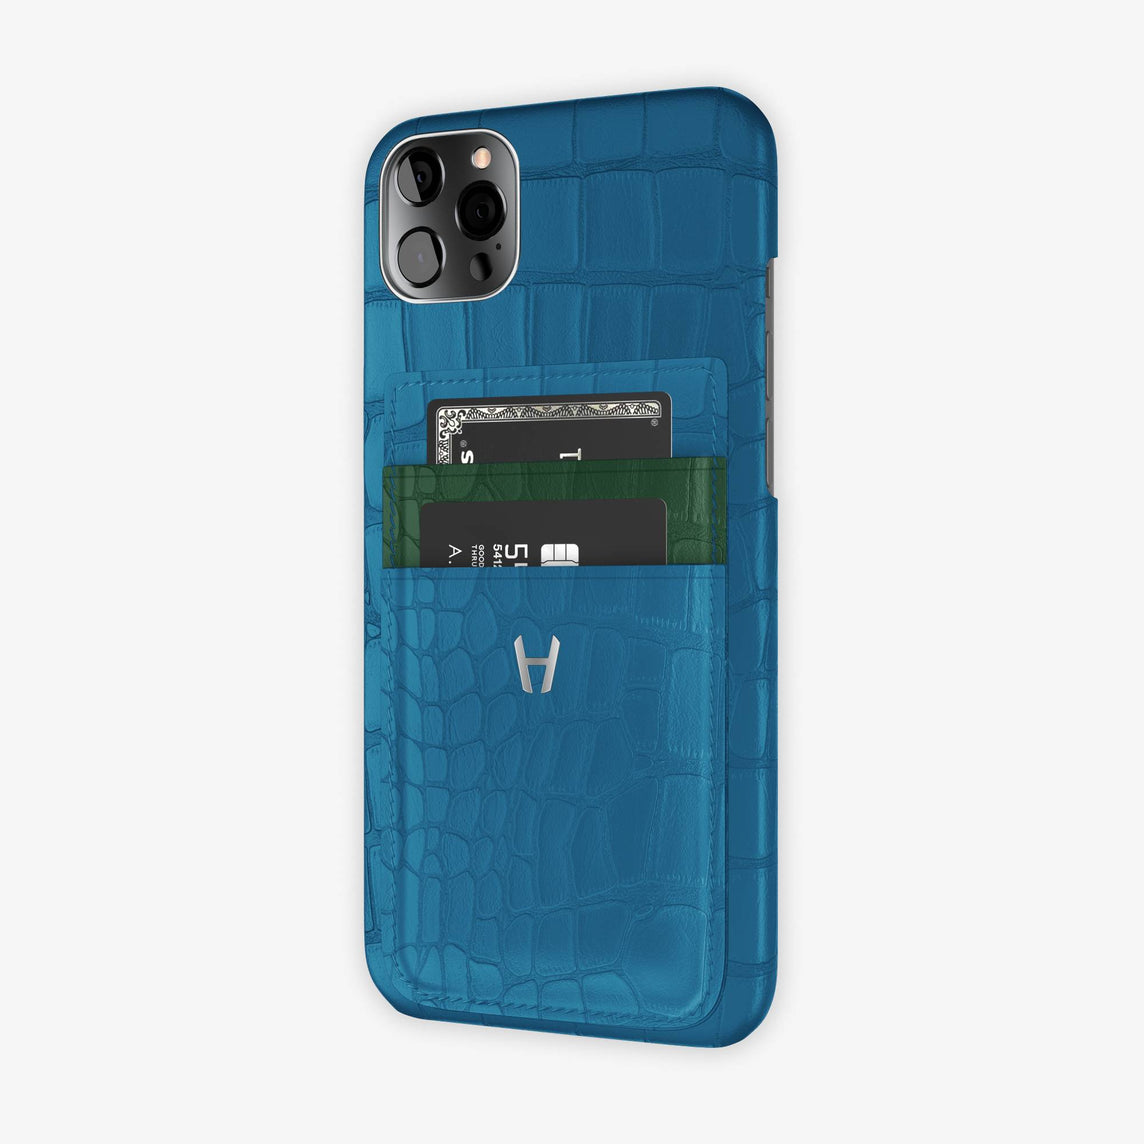 Alligator Pocket Case iPhone 12 Pro Max | Blue Lagoon/Green - Stainless Steel